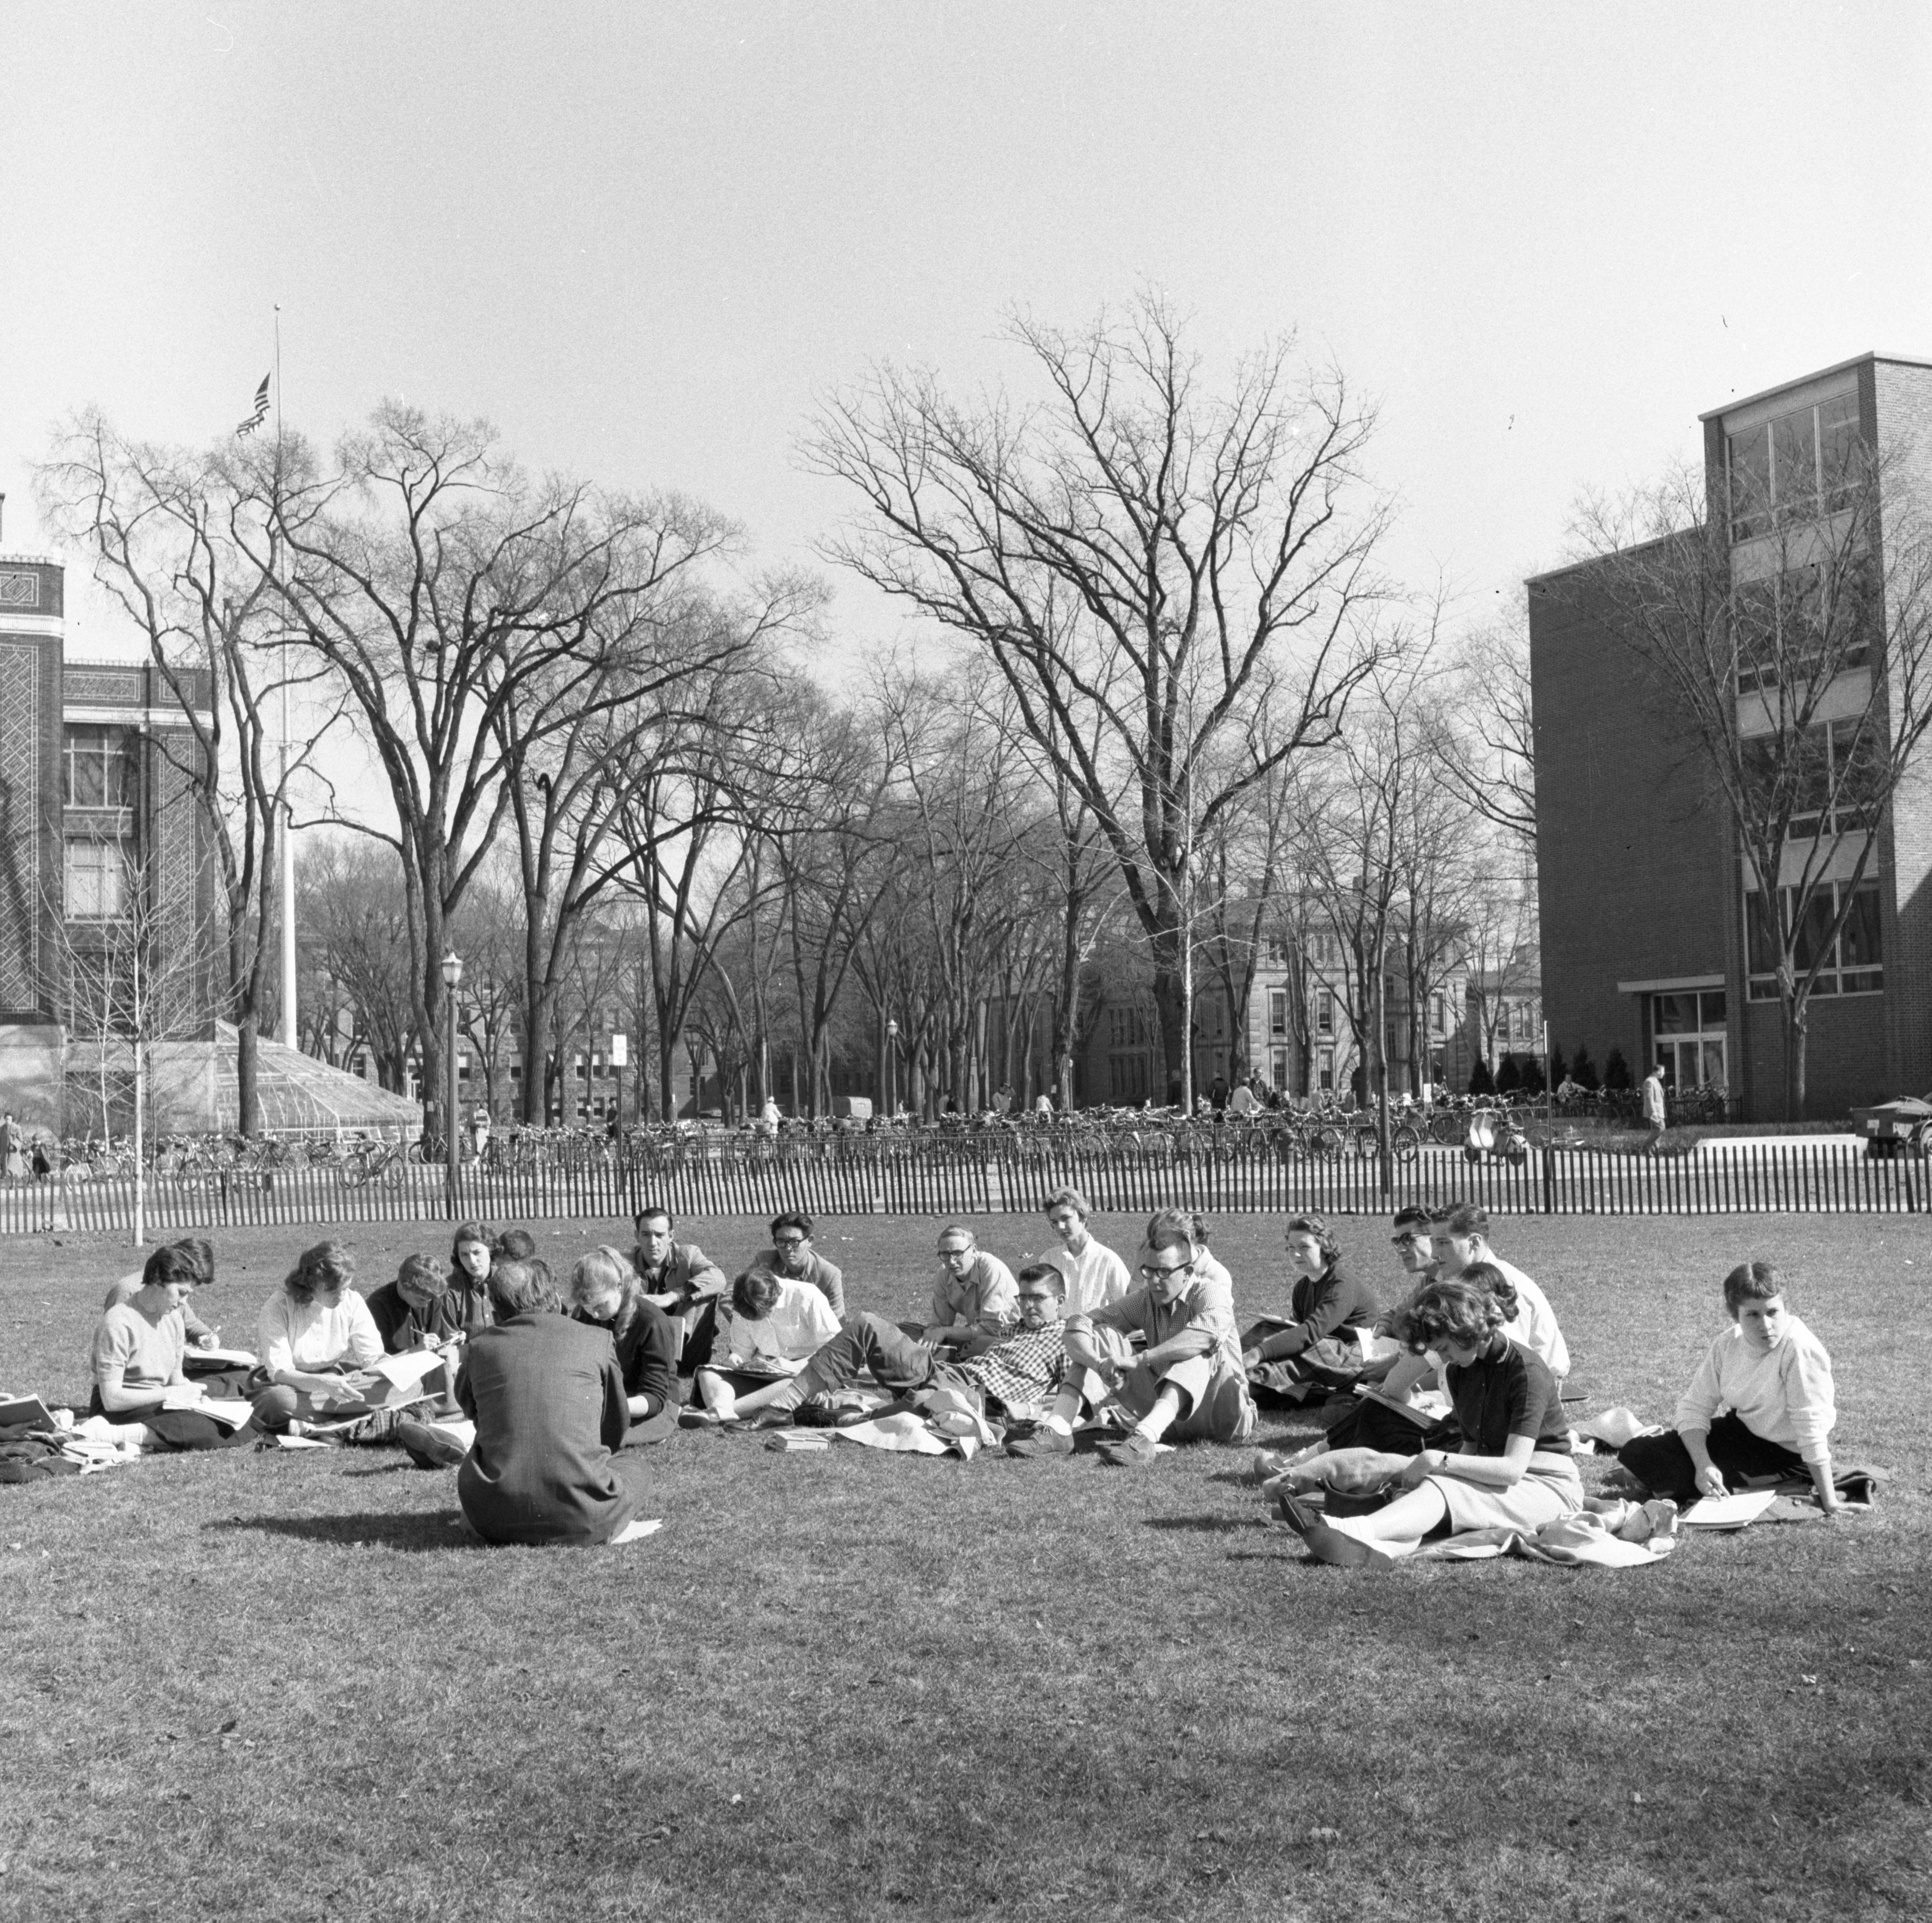 University of Michigan Class Outside On The Diag, March 1957 image